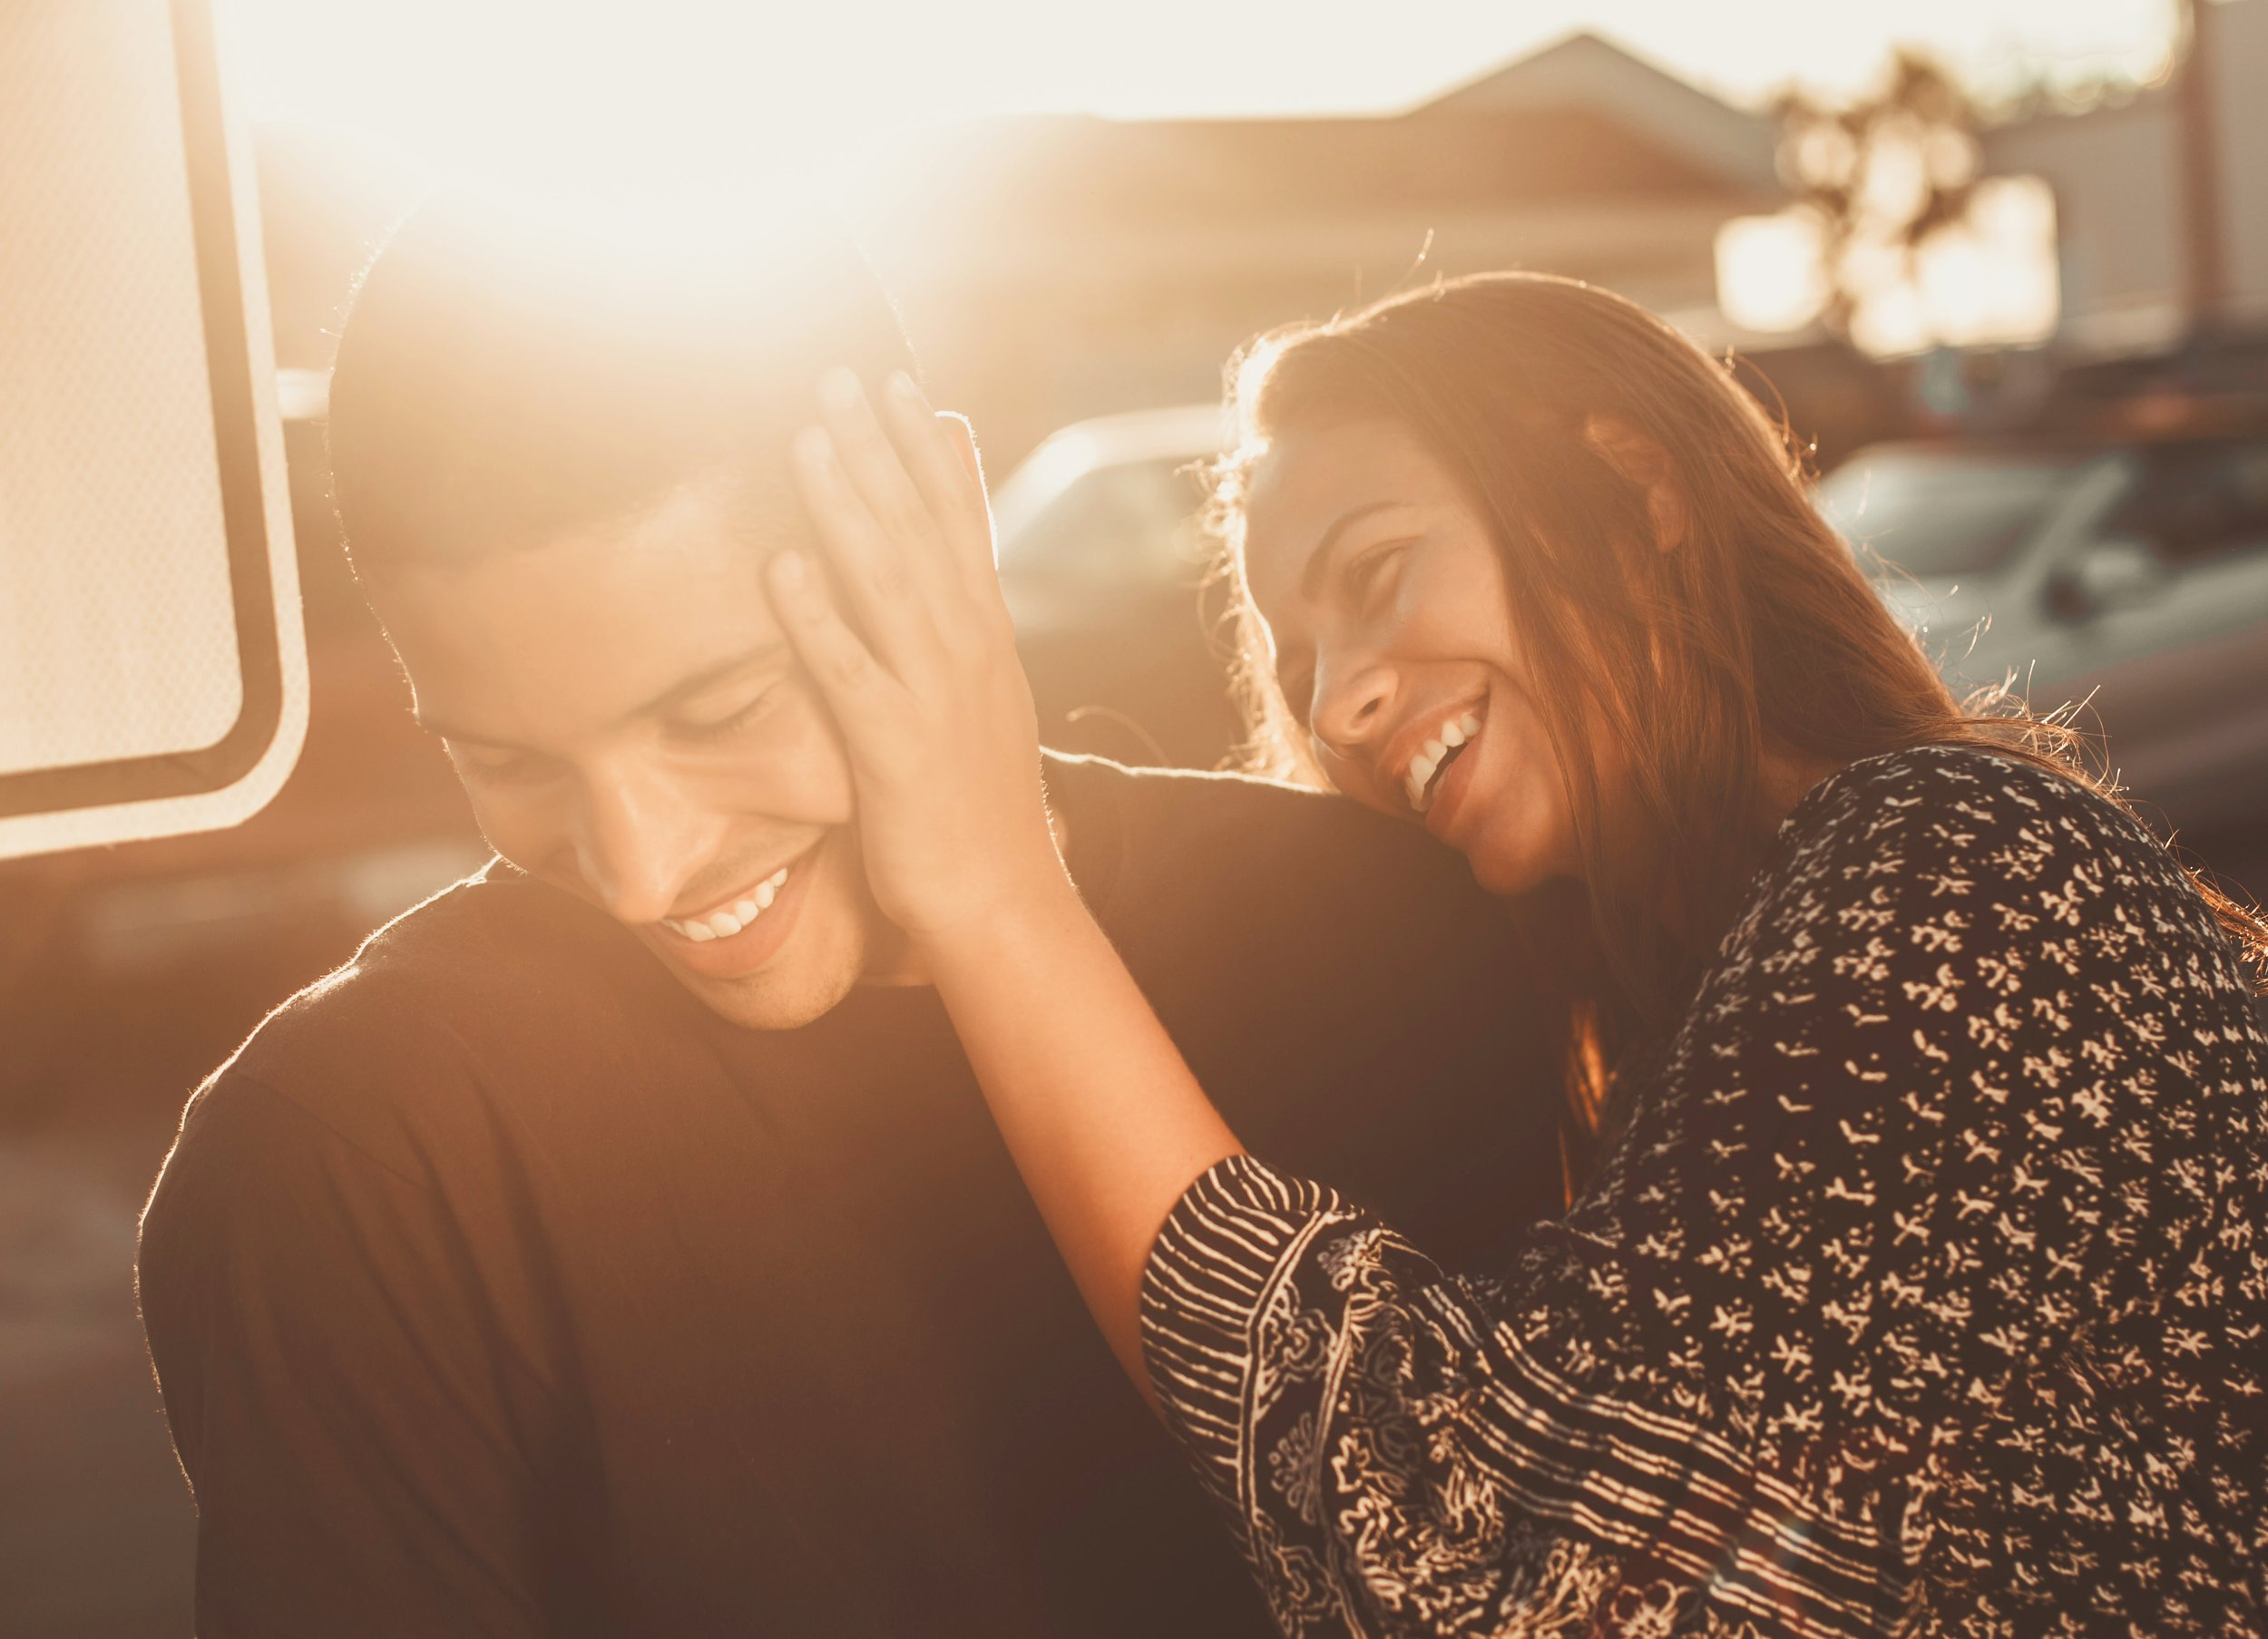 Setting Up To Fail: Three Toxic Behaviors That Are Destroying Your Relationship is free three day masterclass. Sign up right now!